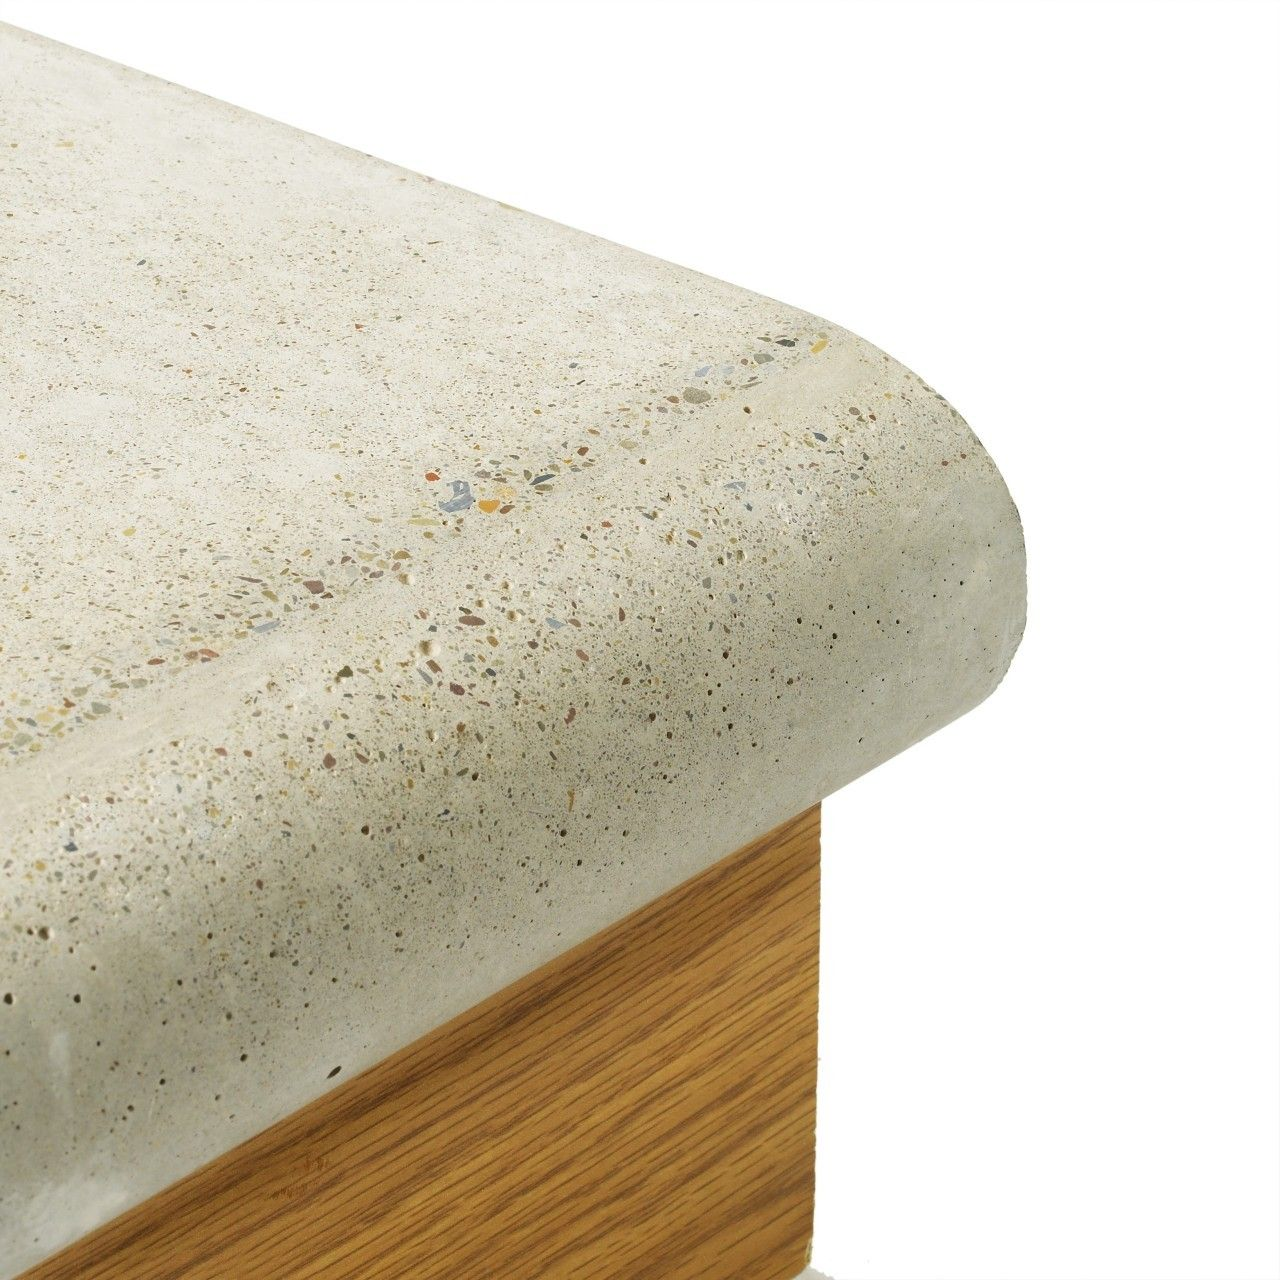 Concrete Countertop Edge Forms Z Counterforms Concrete